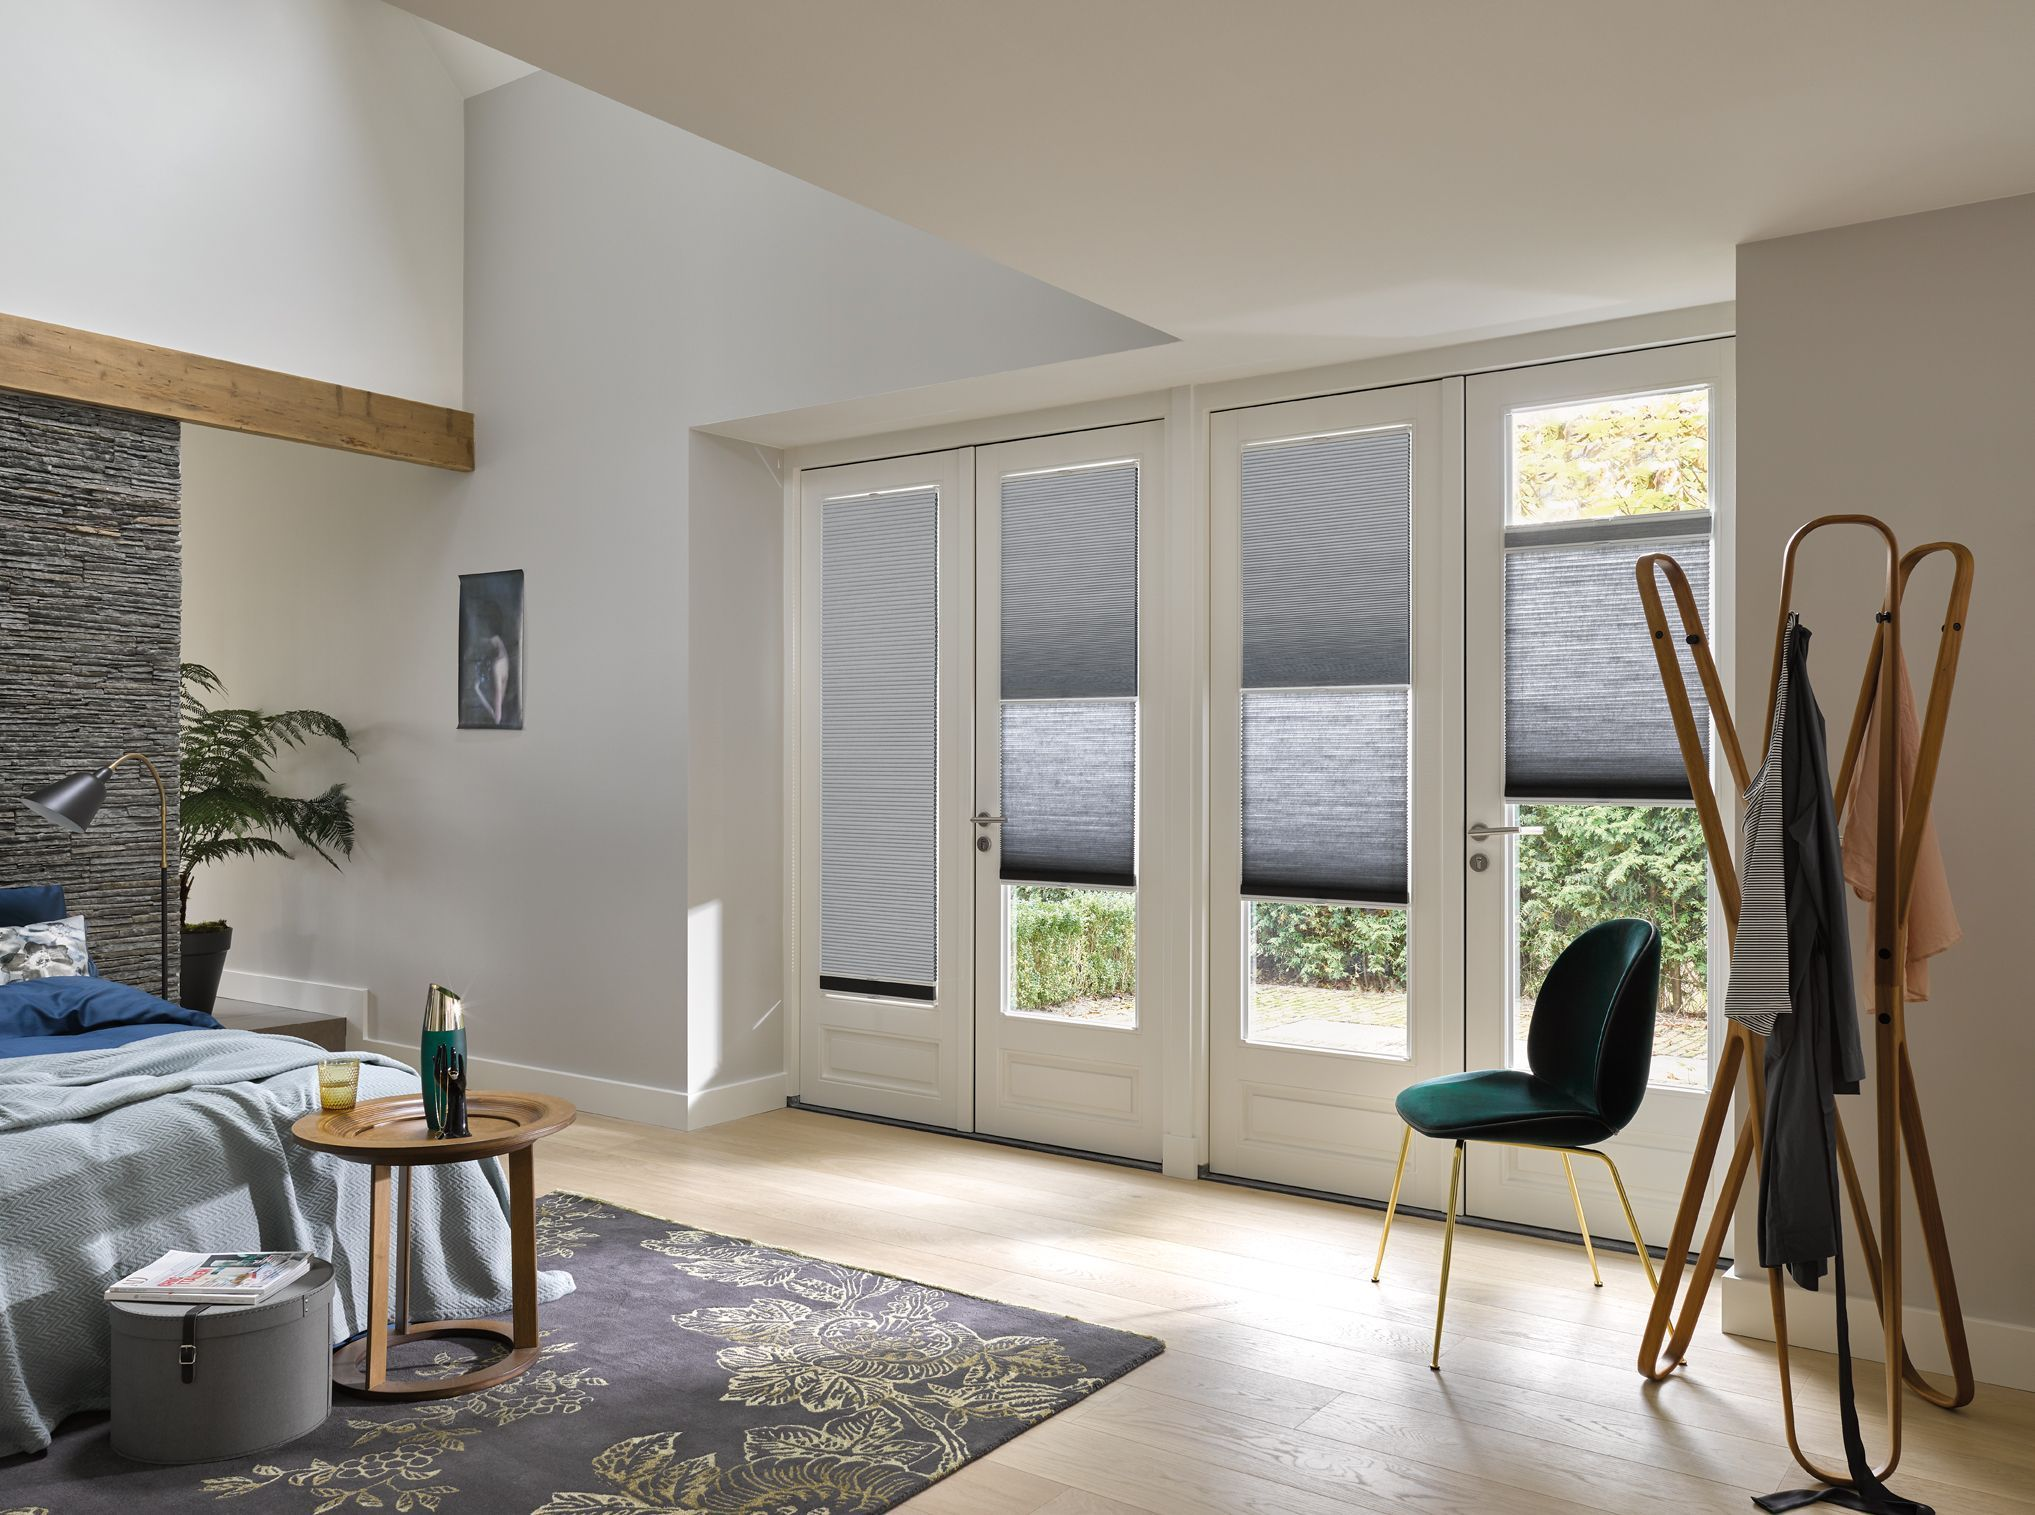 Surprising cool ideas farmhouse blinds master bedrooms blinds ideas